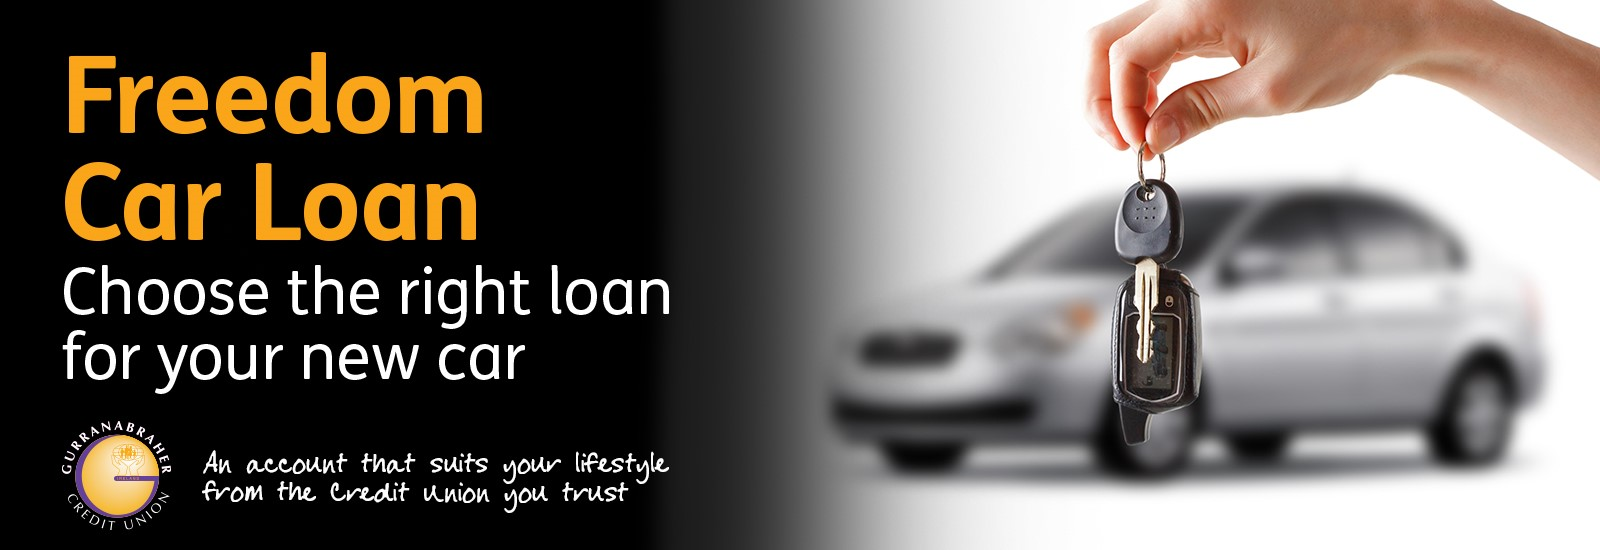 Freedom Car Loan website